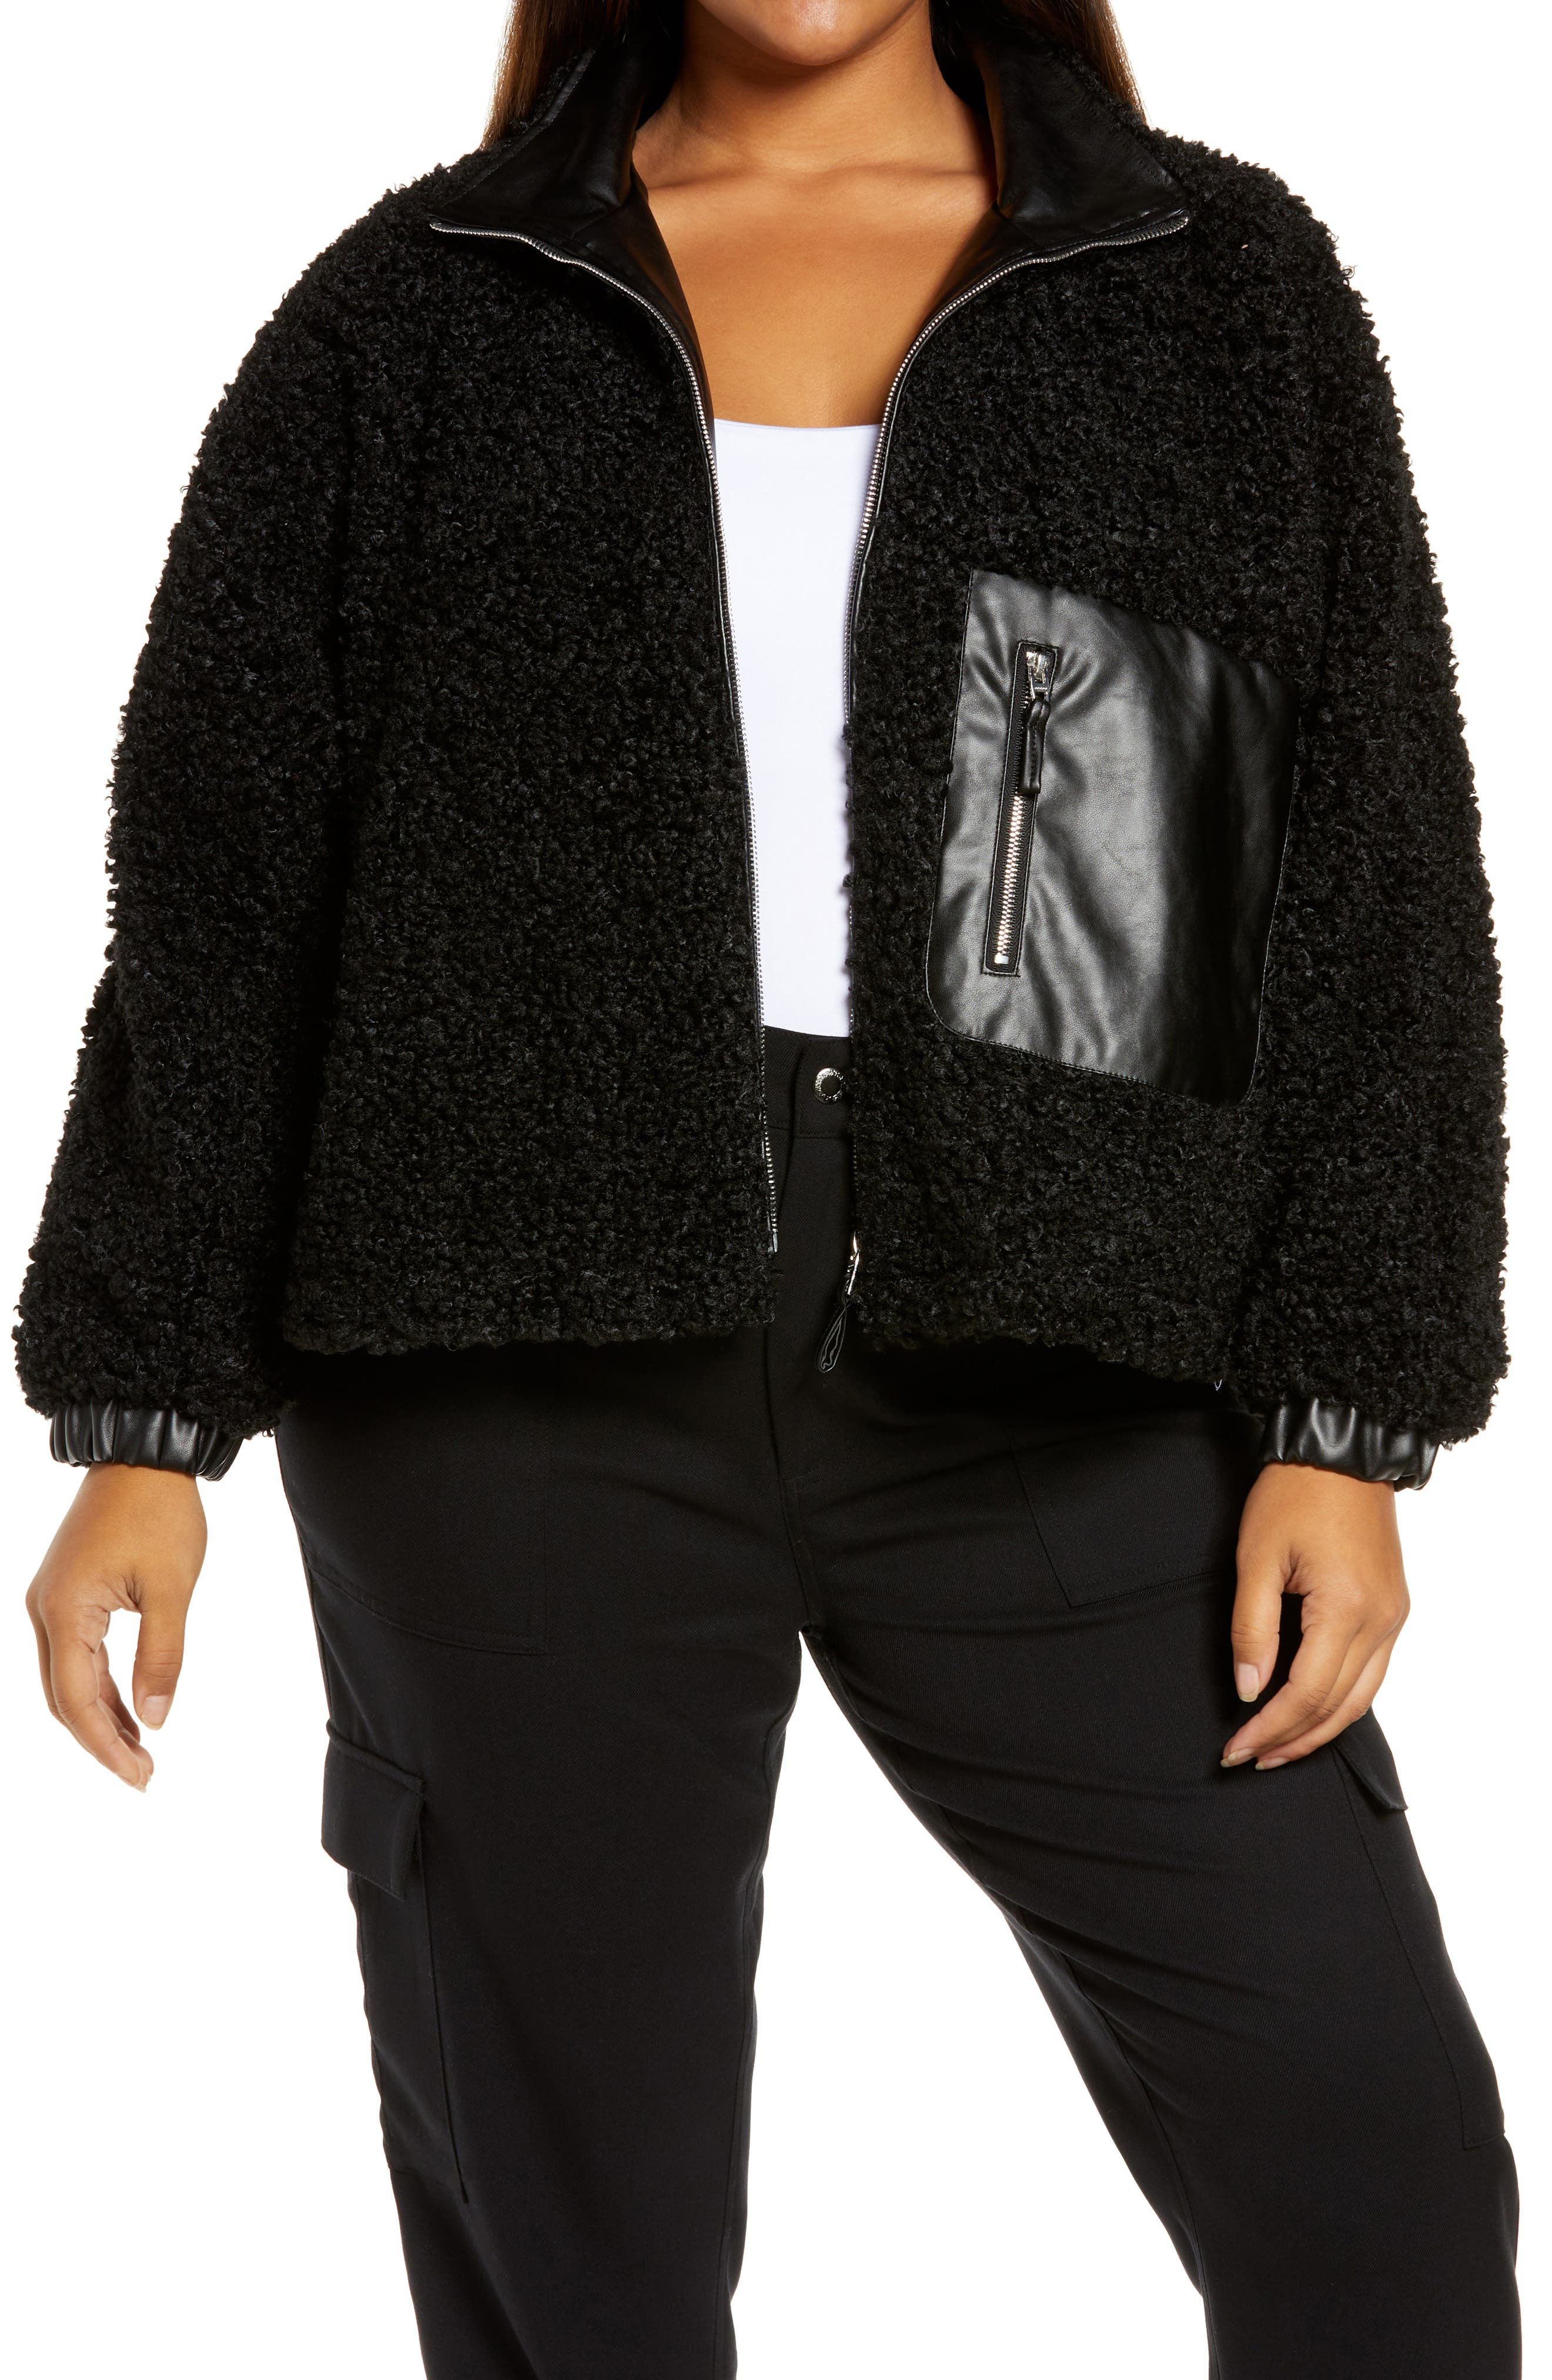 Plus Size Women's Blanknyc Faux Shearling With Faux Leather Trim Bomber Jacket, Size 1X - Black